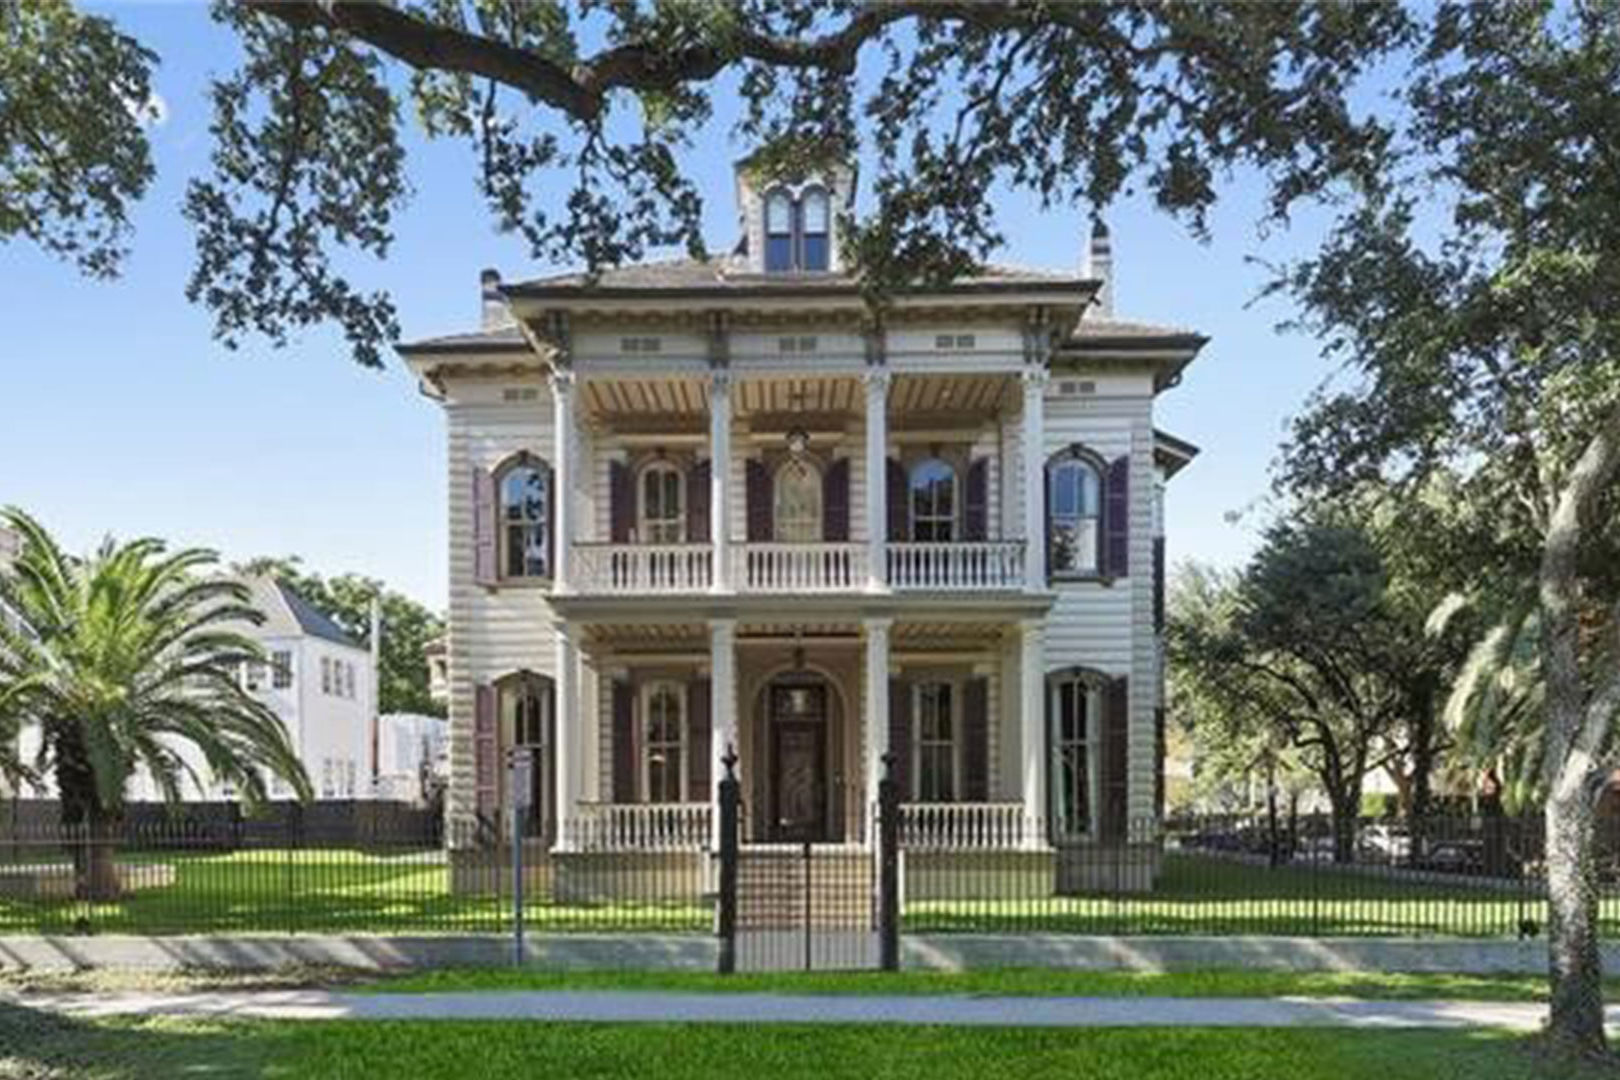 Price Tag Slashed Again on Anne Rice's Former New Orleans Victorian, Drops to $4.3 Million